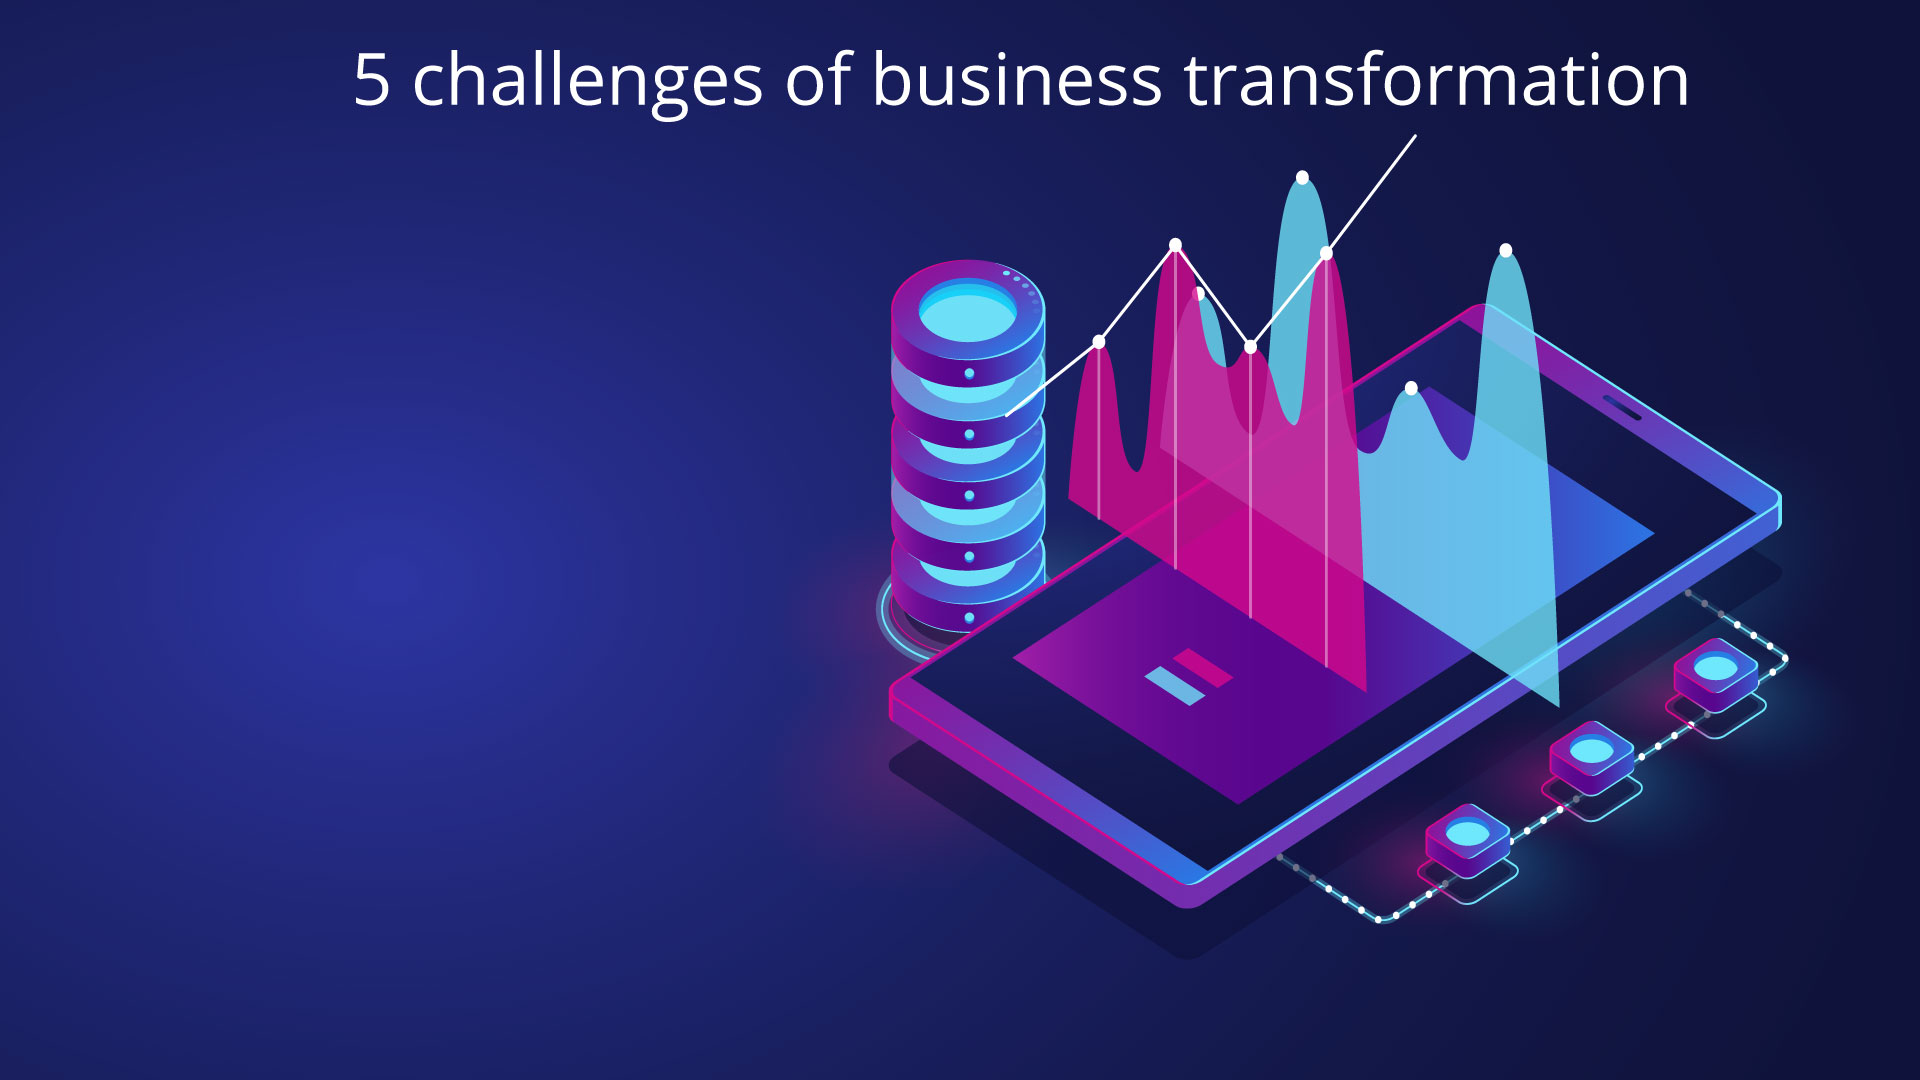 5challenges of business transformation